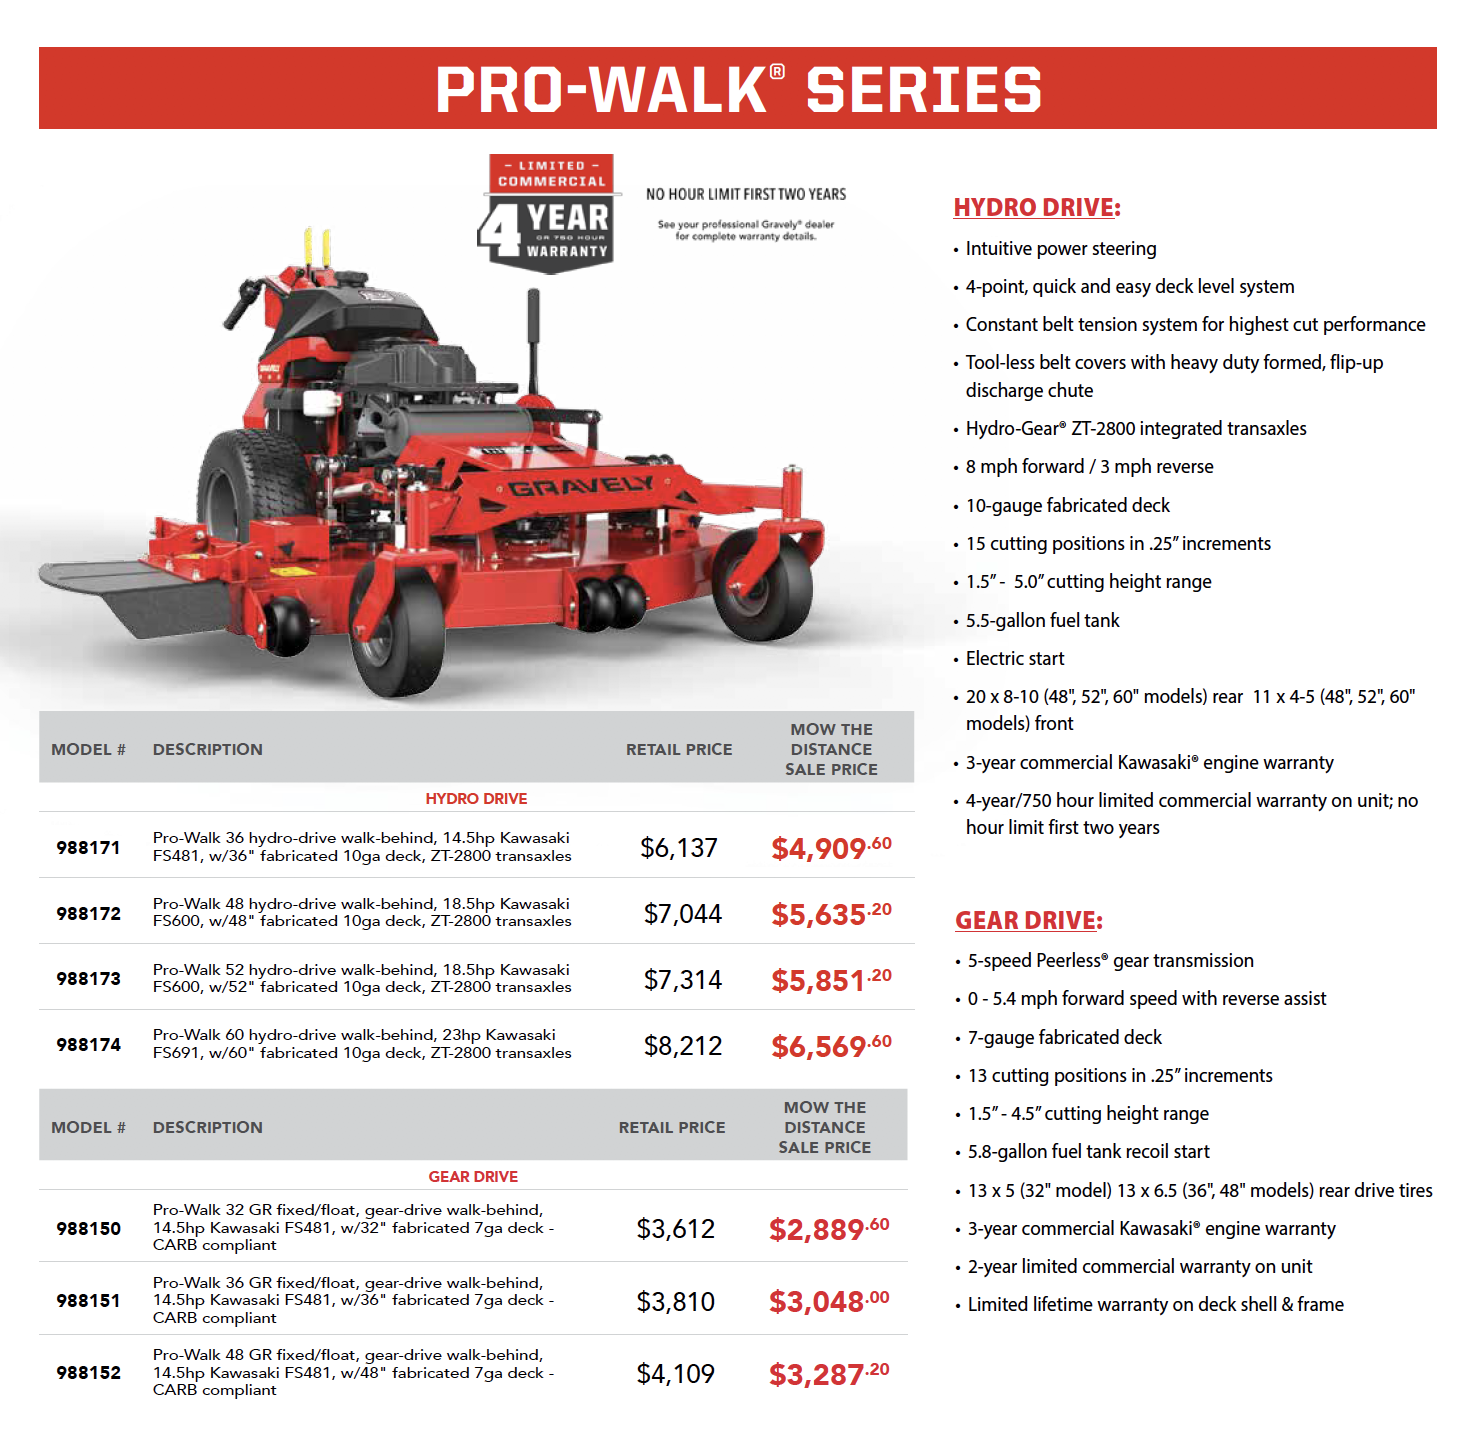 Mow the Distance Gravely Days March 22 -30, 2019